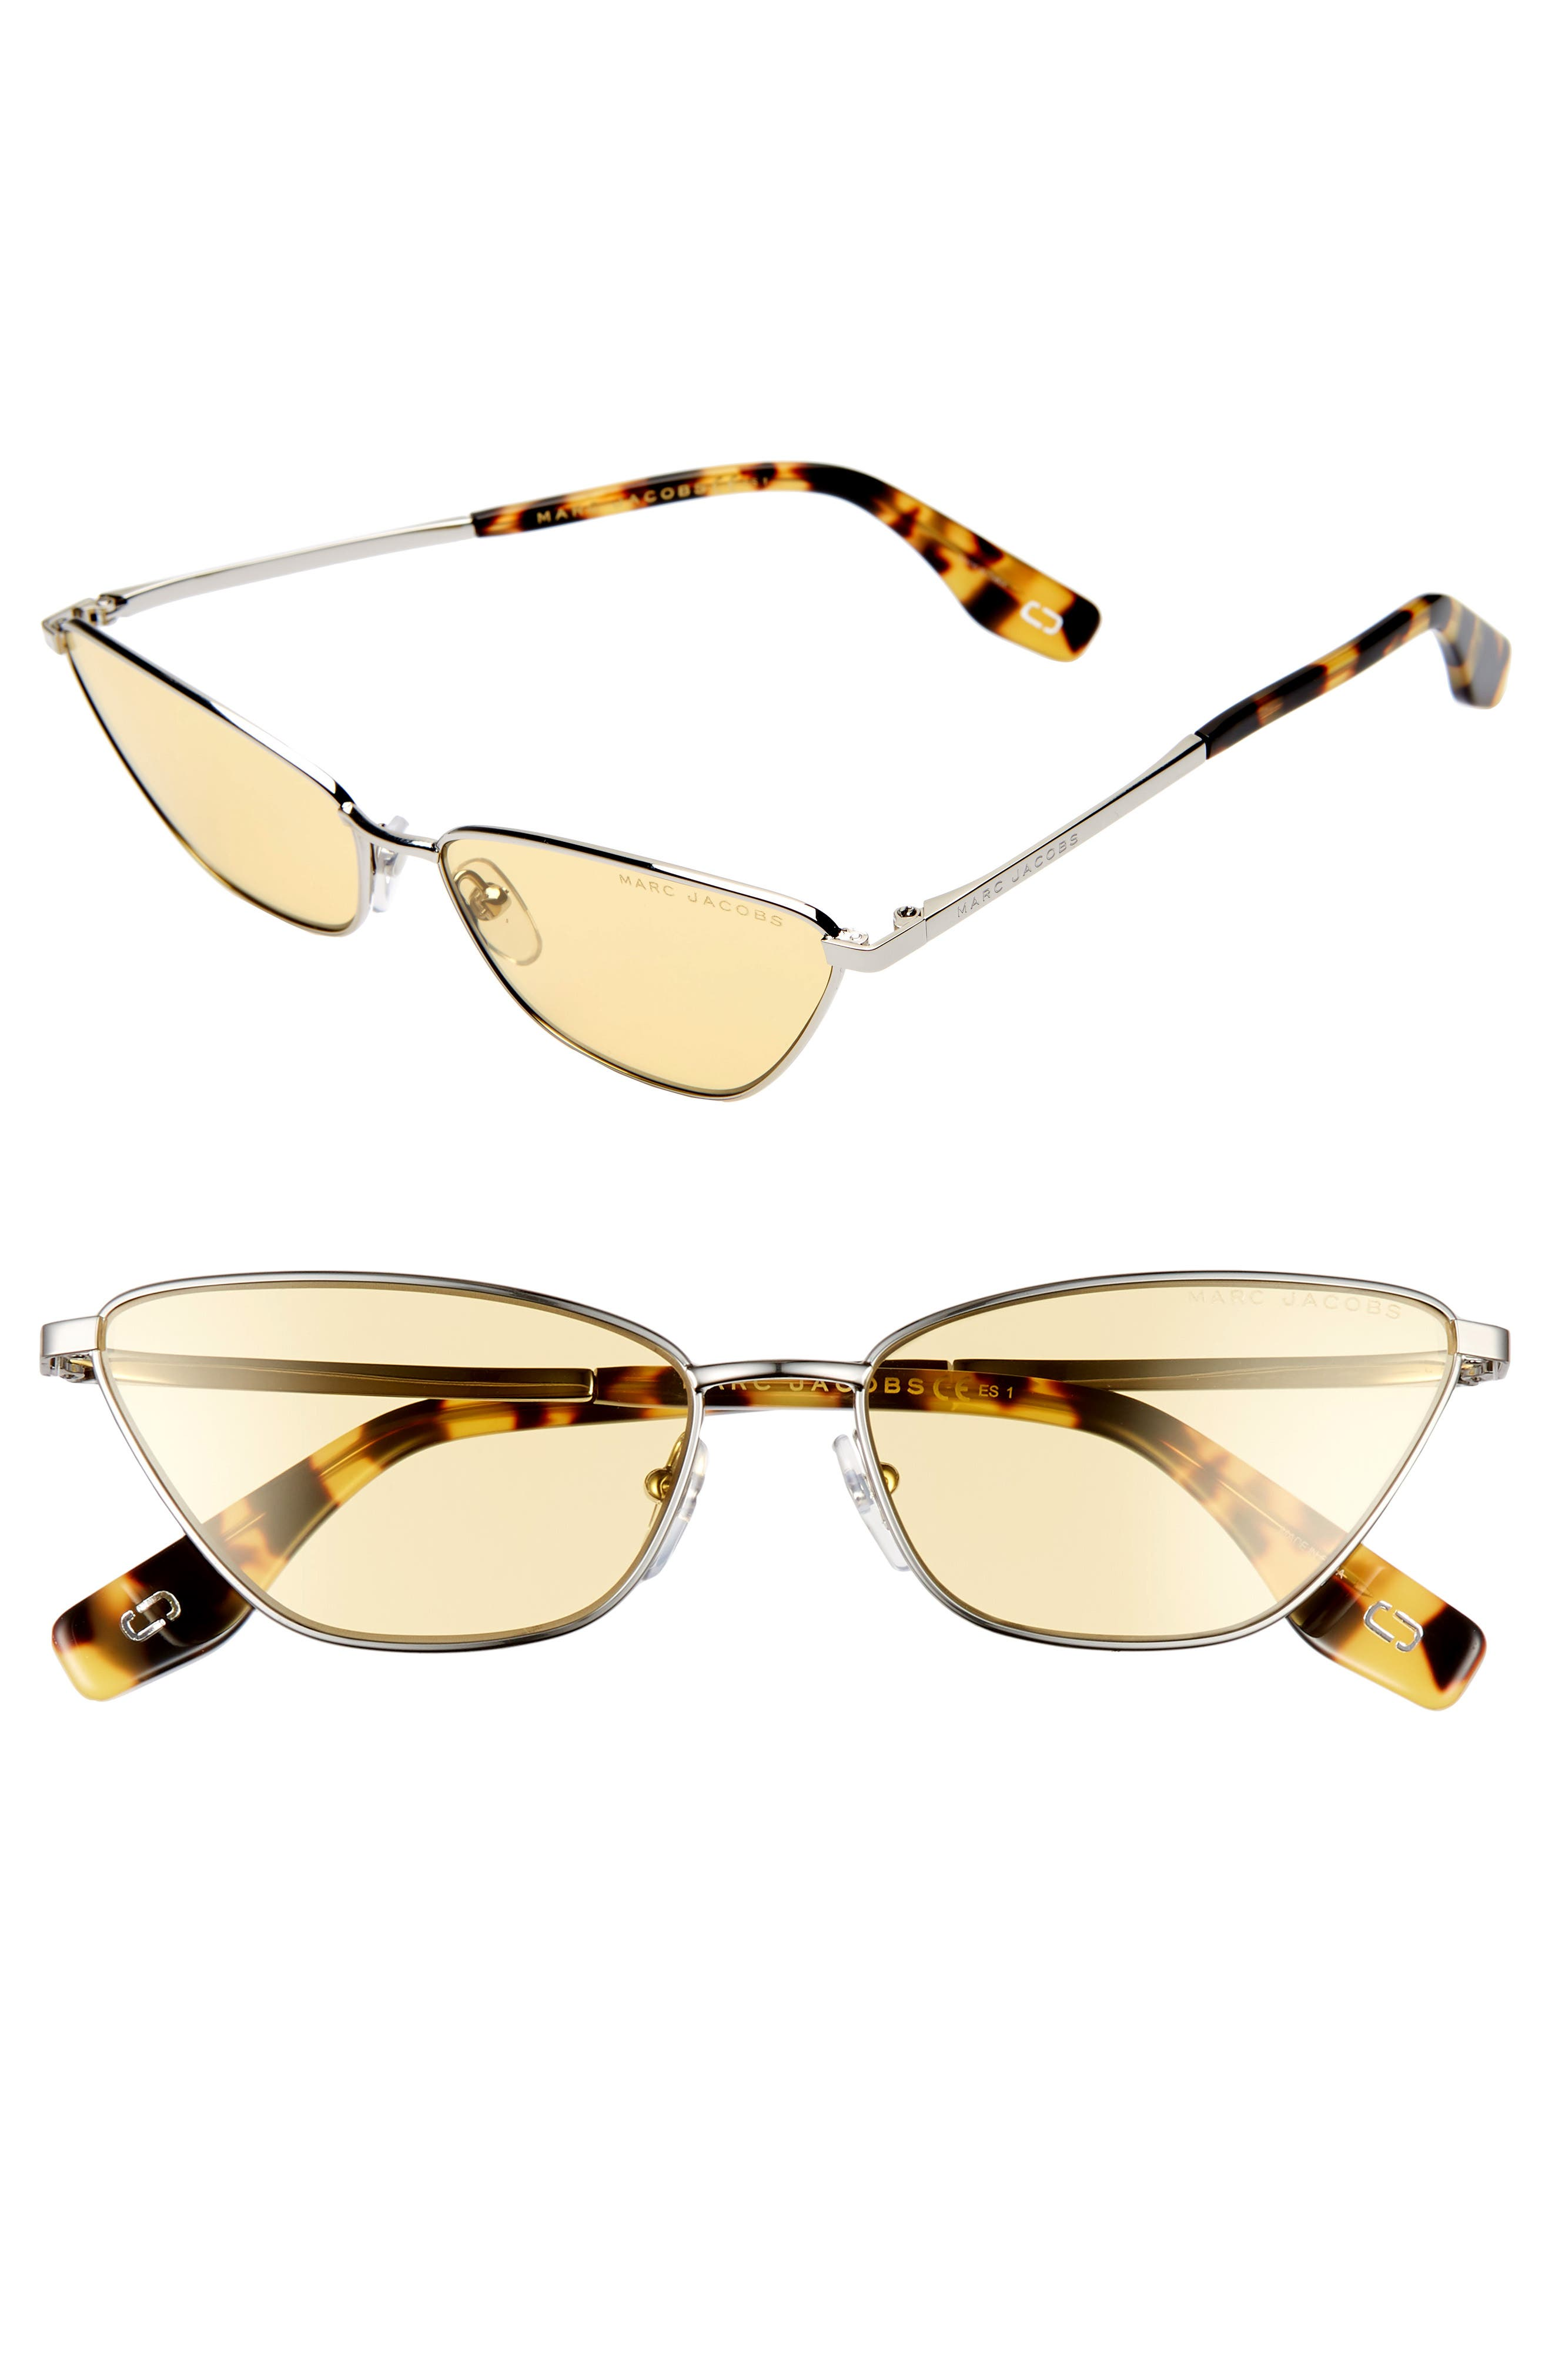 MARC JACOBS, 57mm Cat Eye Sunglasses, Main thumbnail 1, color, SILVER/ YELLOW